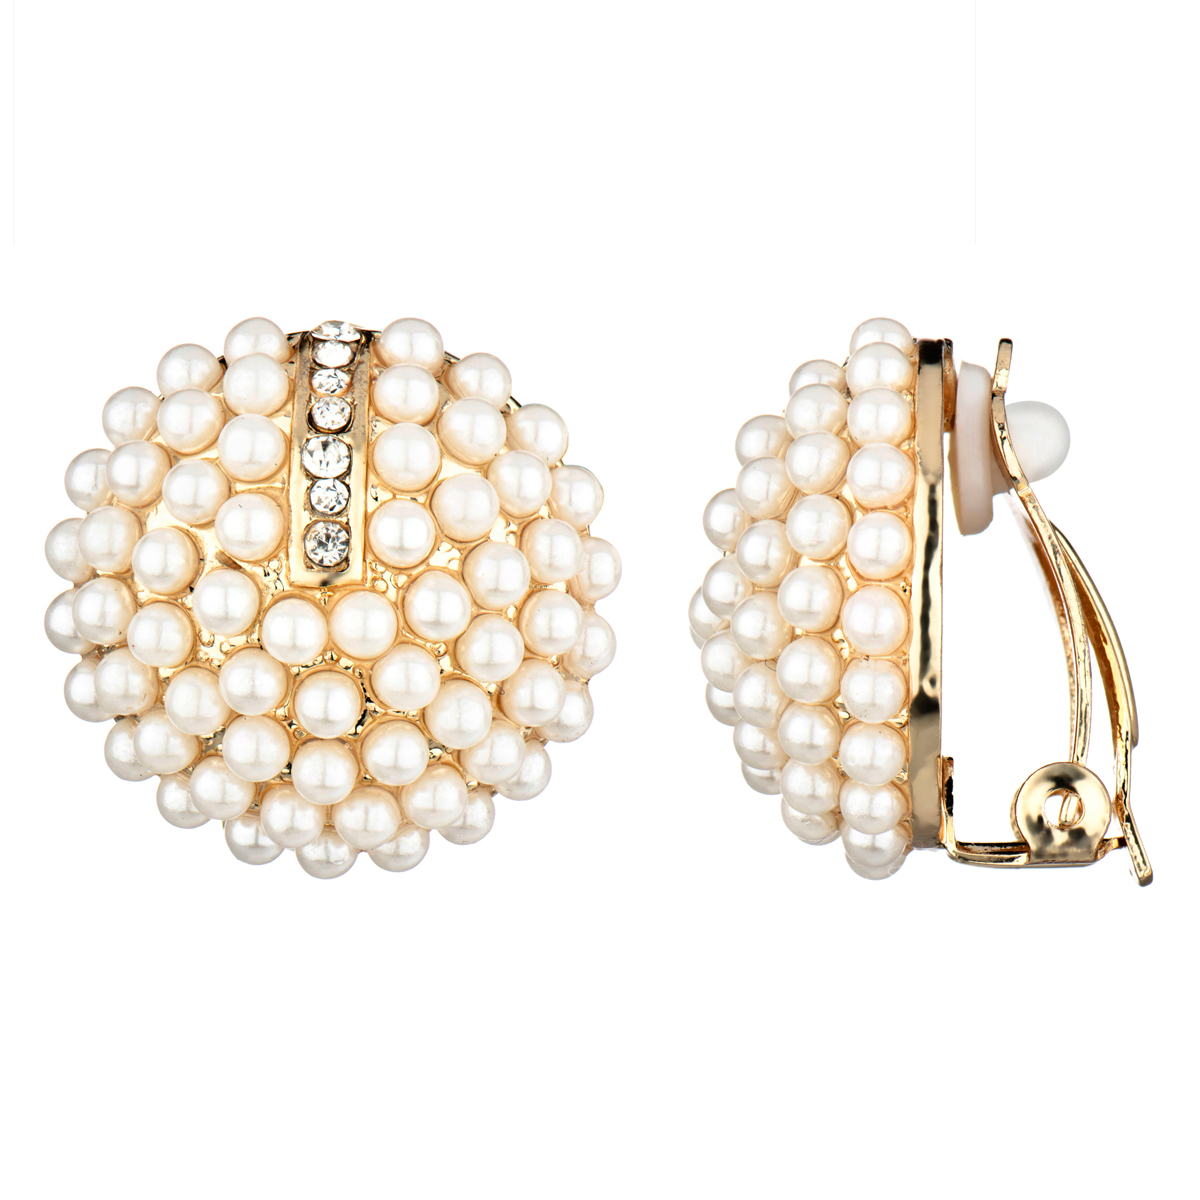 Valerie's Gold Imitation Pearl Cluster Button Clip On Earrings Roll Off  Image To Close Zoom Window